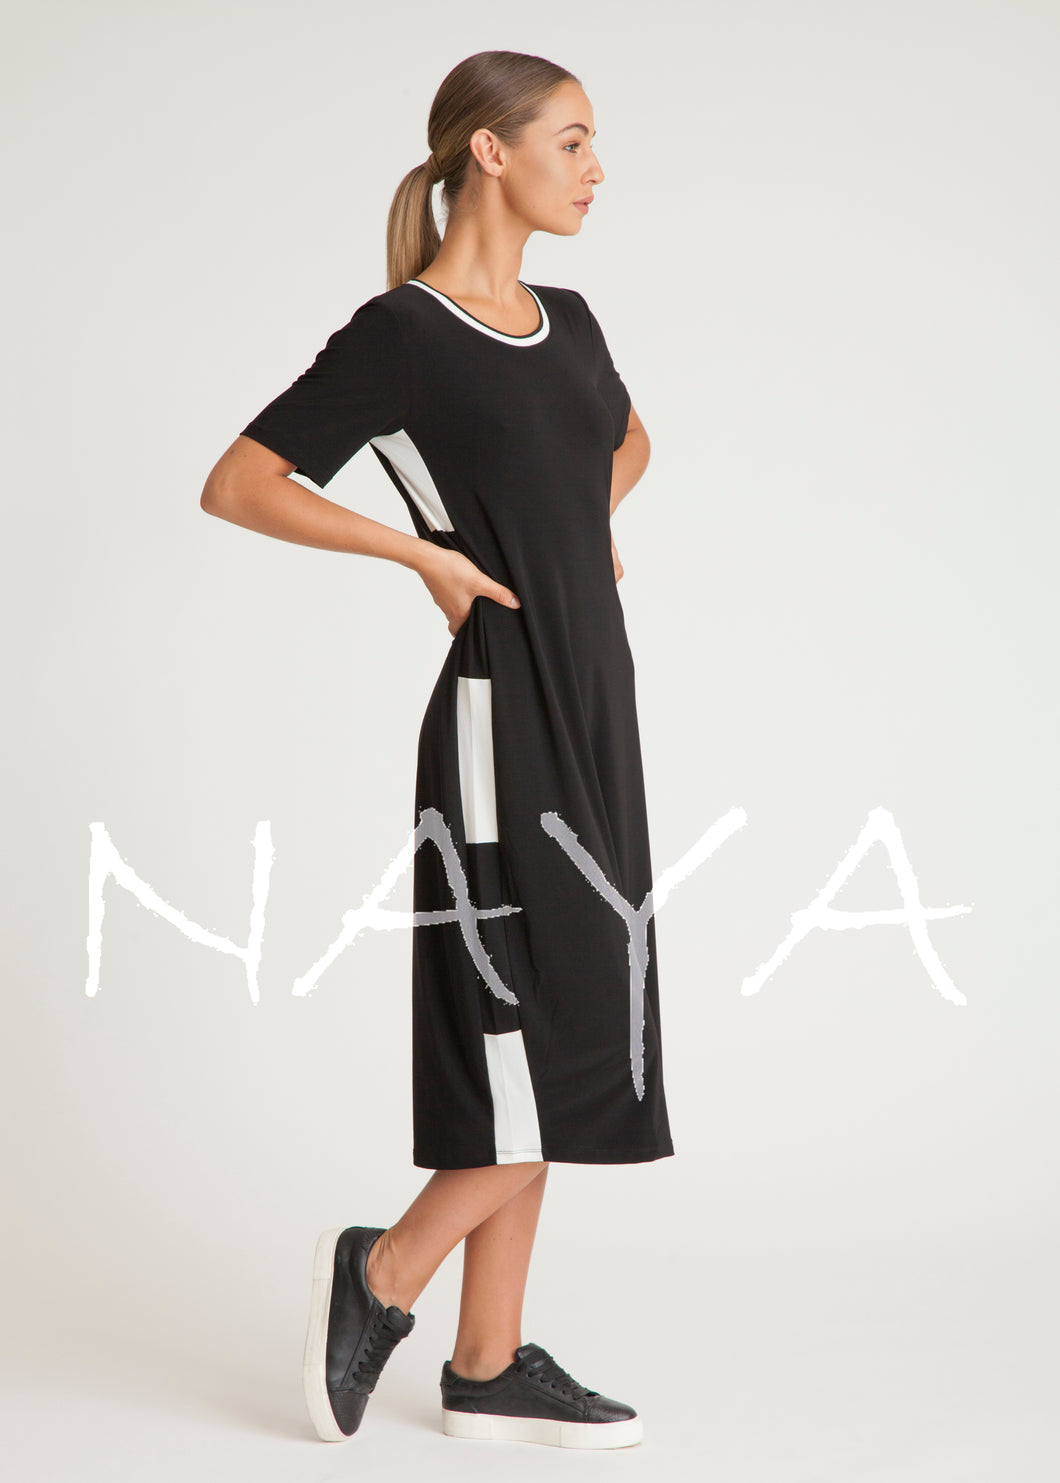 Naya Black & White Midi Jersey Dress NAS19188 | The LBD Boutique & Trouser Shop